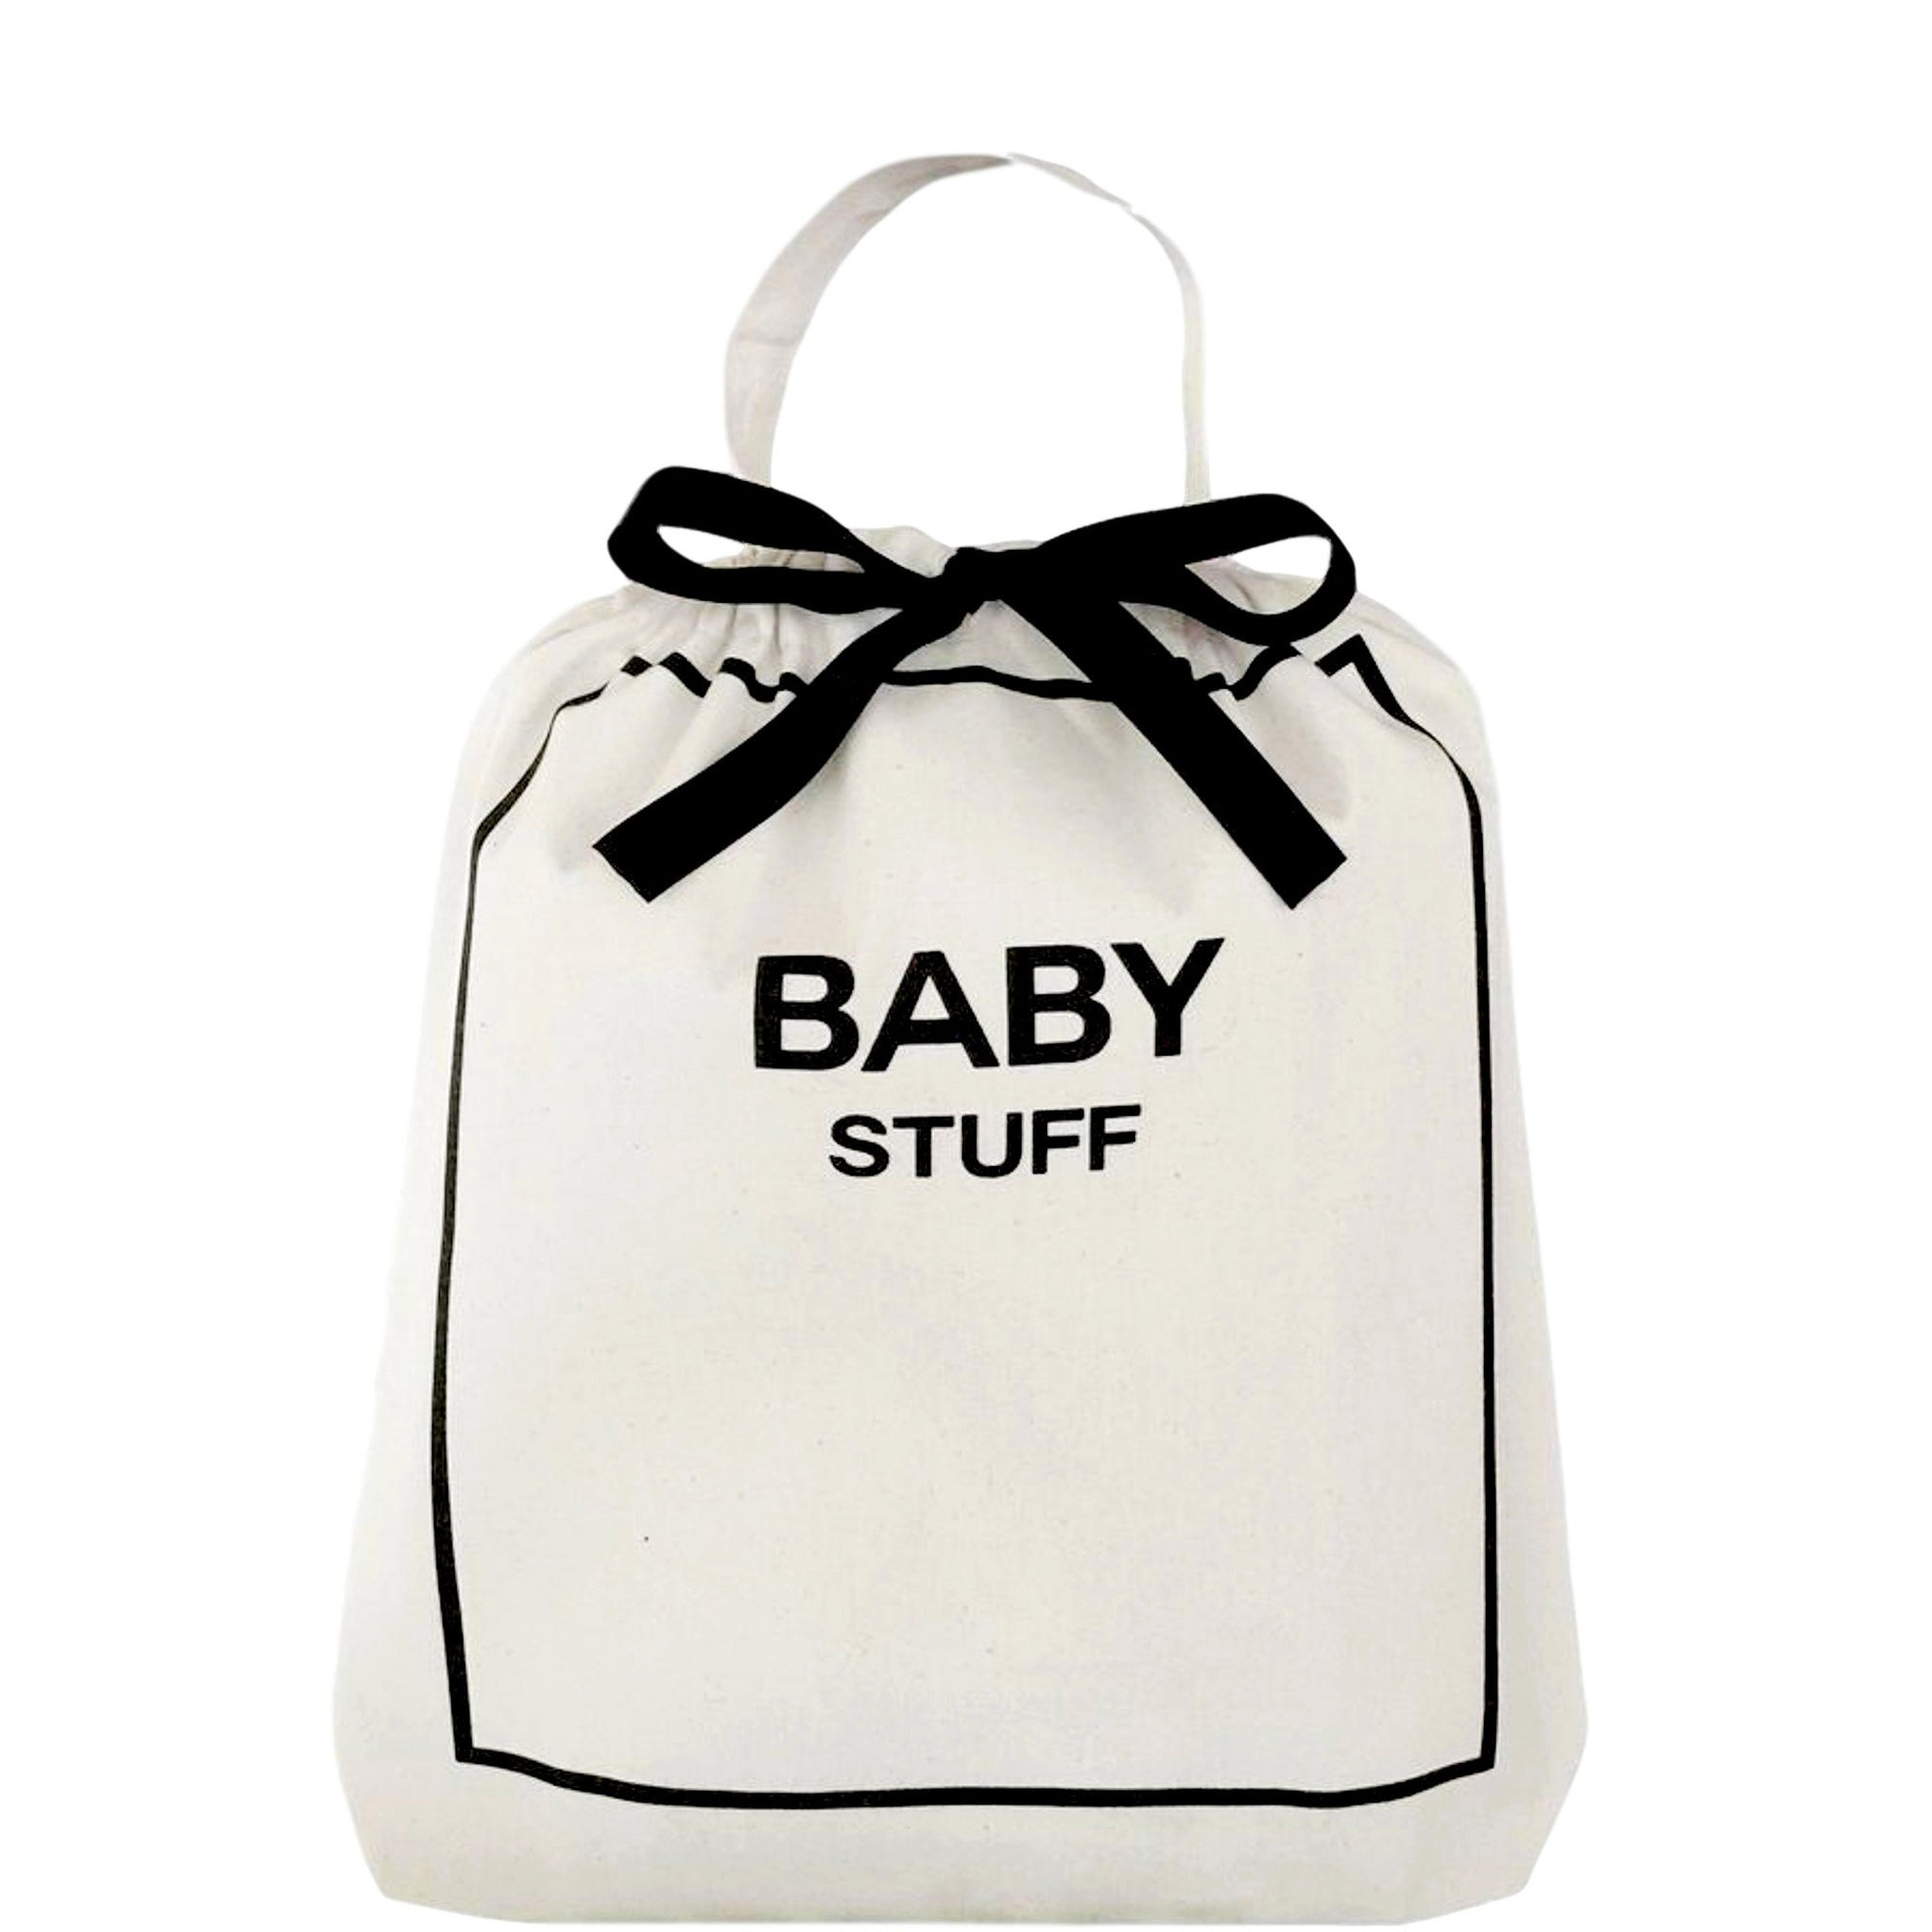 Baby Bag Couture - Bag-all Paris